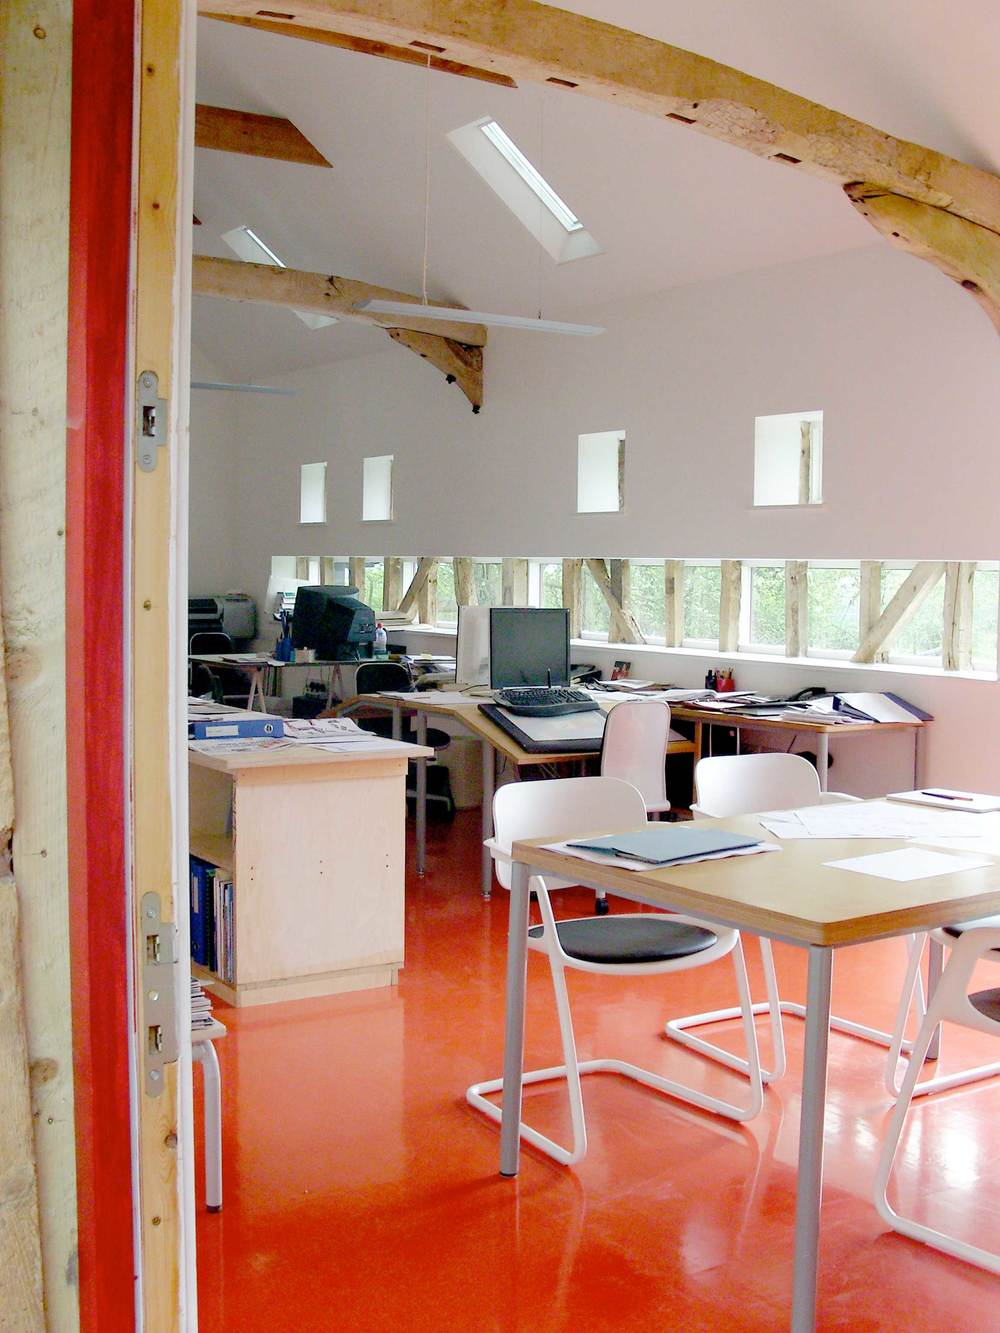 Architect's Studio modece office in hartest, suffolk hemp deep green eco commercial design